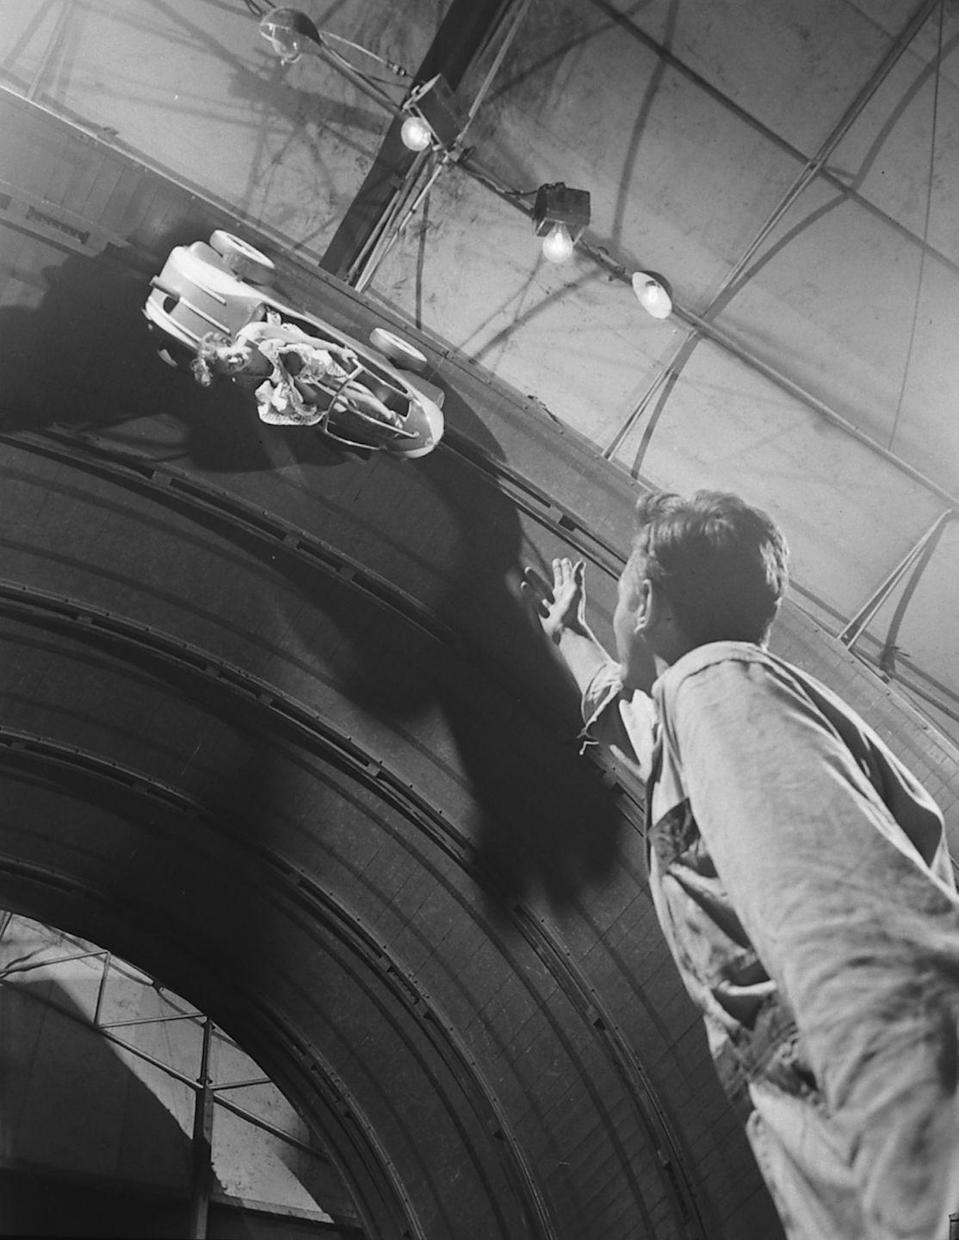 <p>Spectators could watch from down below — perhaps a bit too closely — at Riverview Park in Chicago. The attraction shut down in the mid-'60s due to safety concerns, and Riverview closed entirely in 1967.</p>